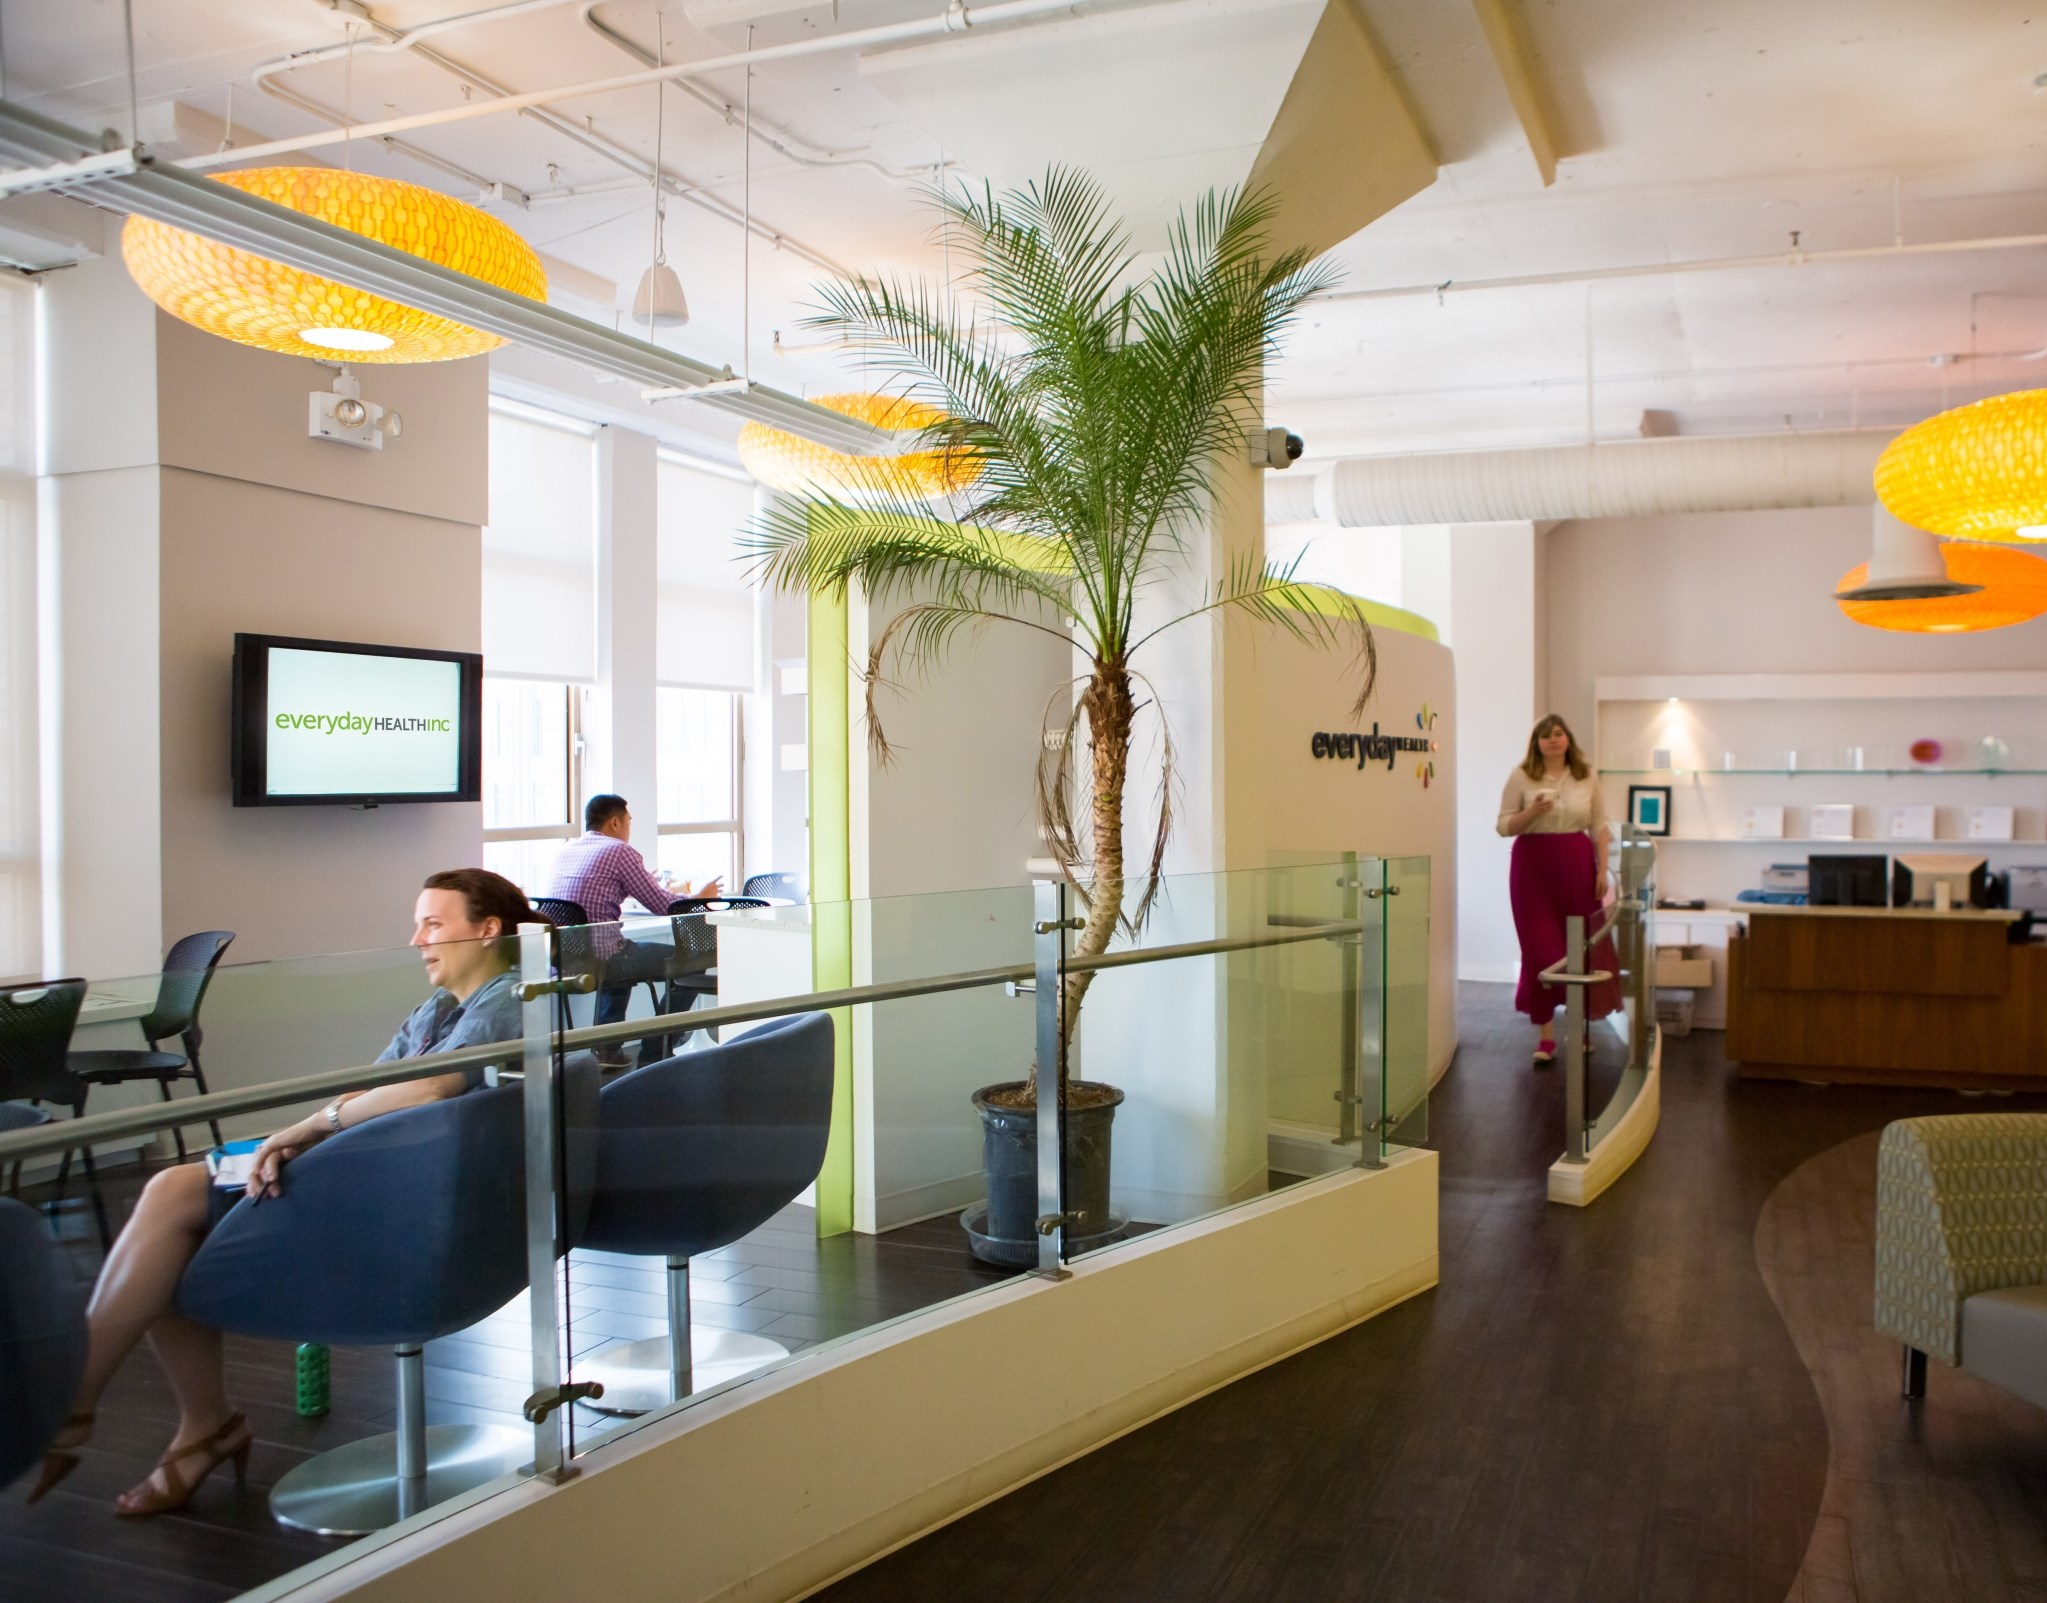 Everyday Health expects growth from consolidated offerings and specialty brands